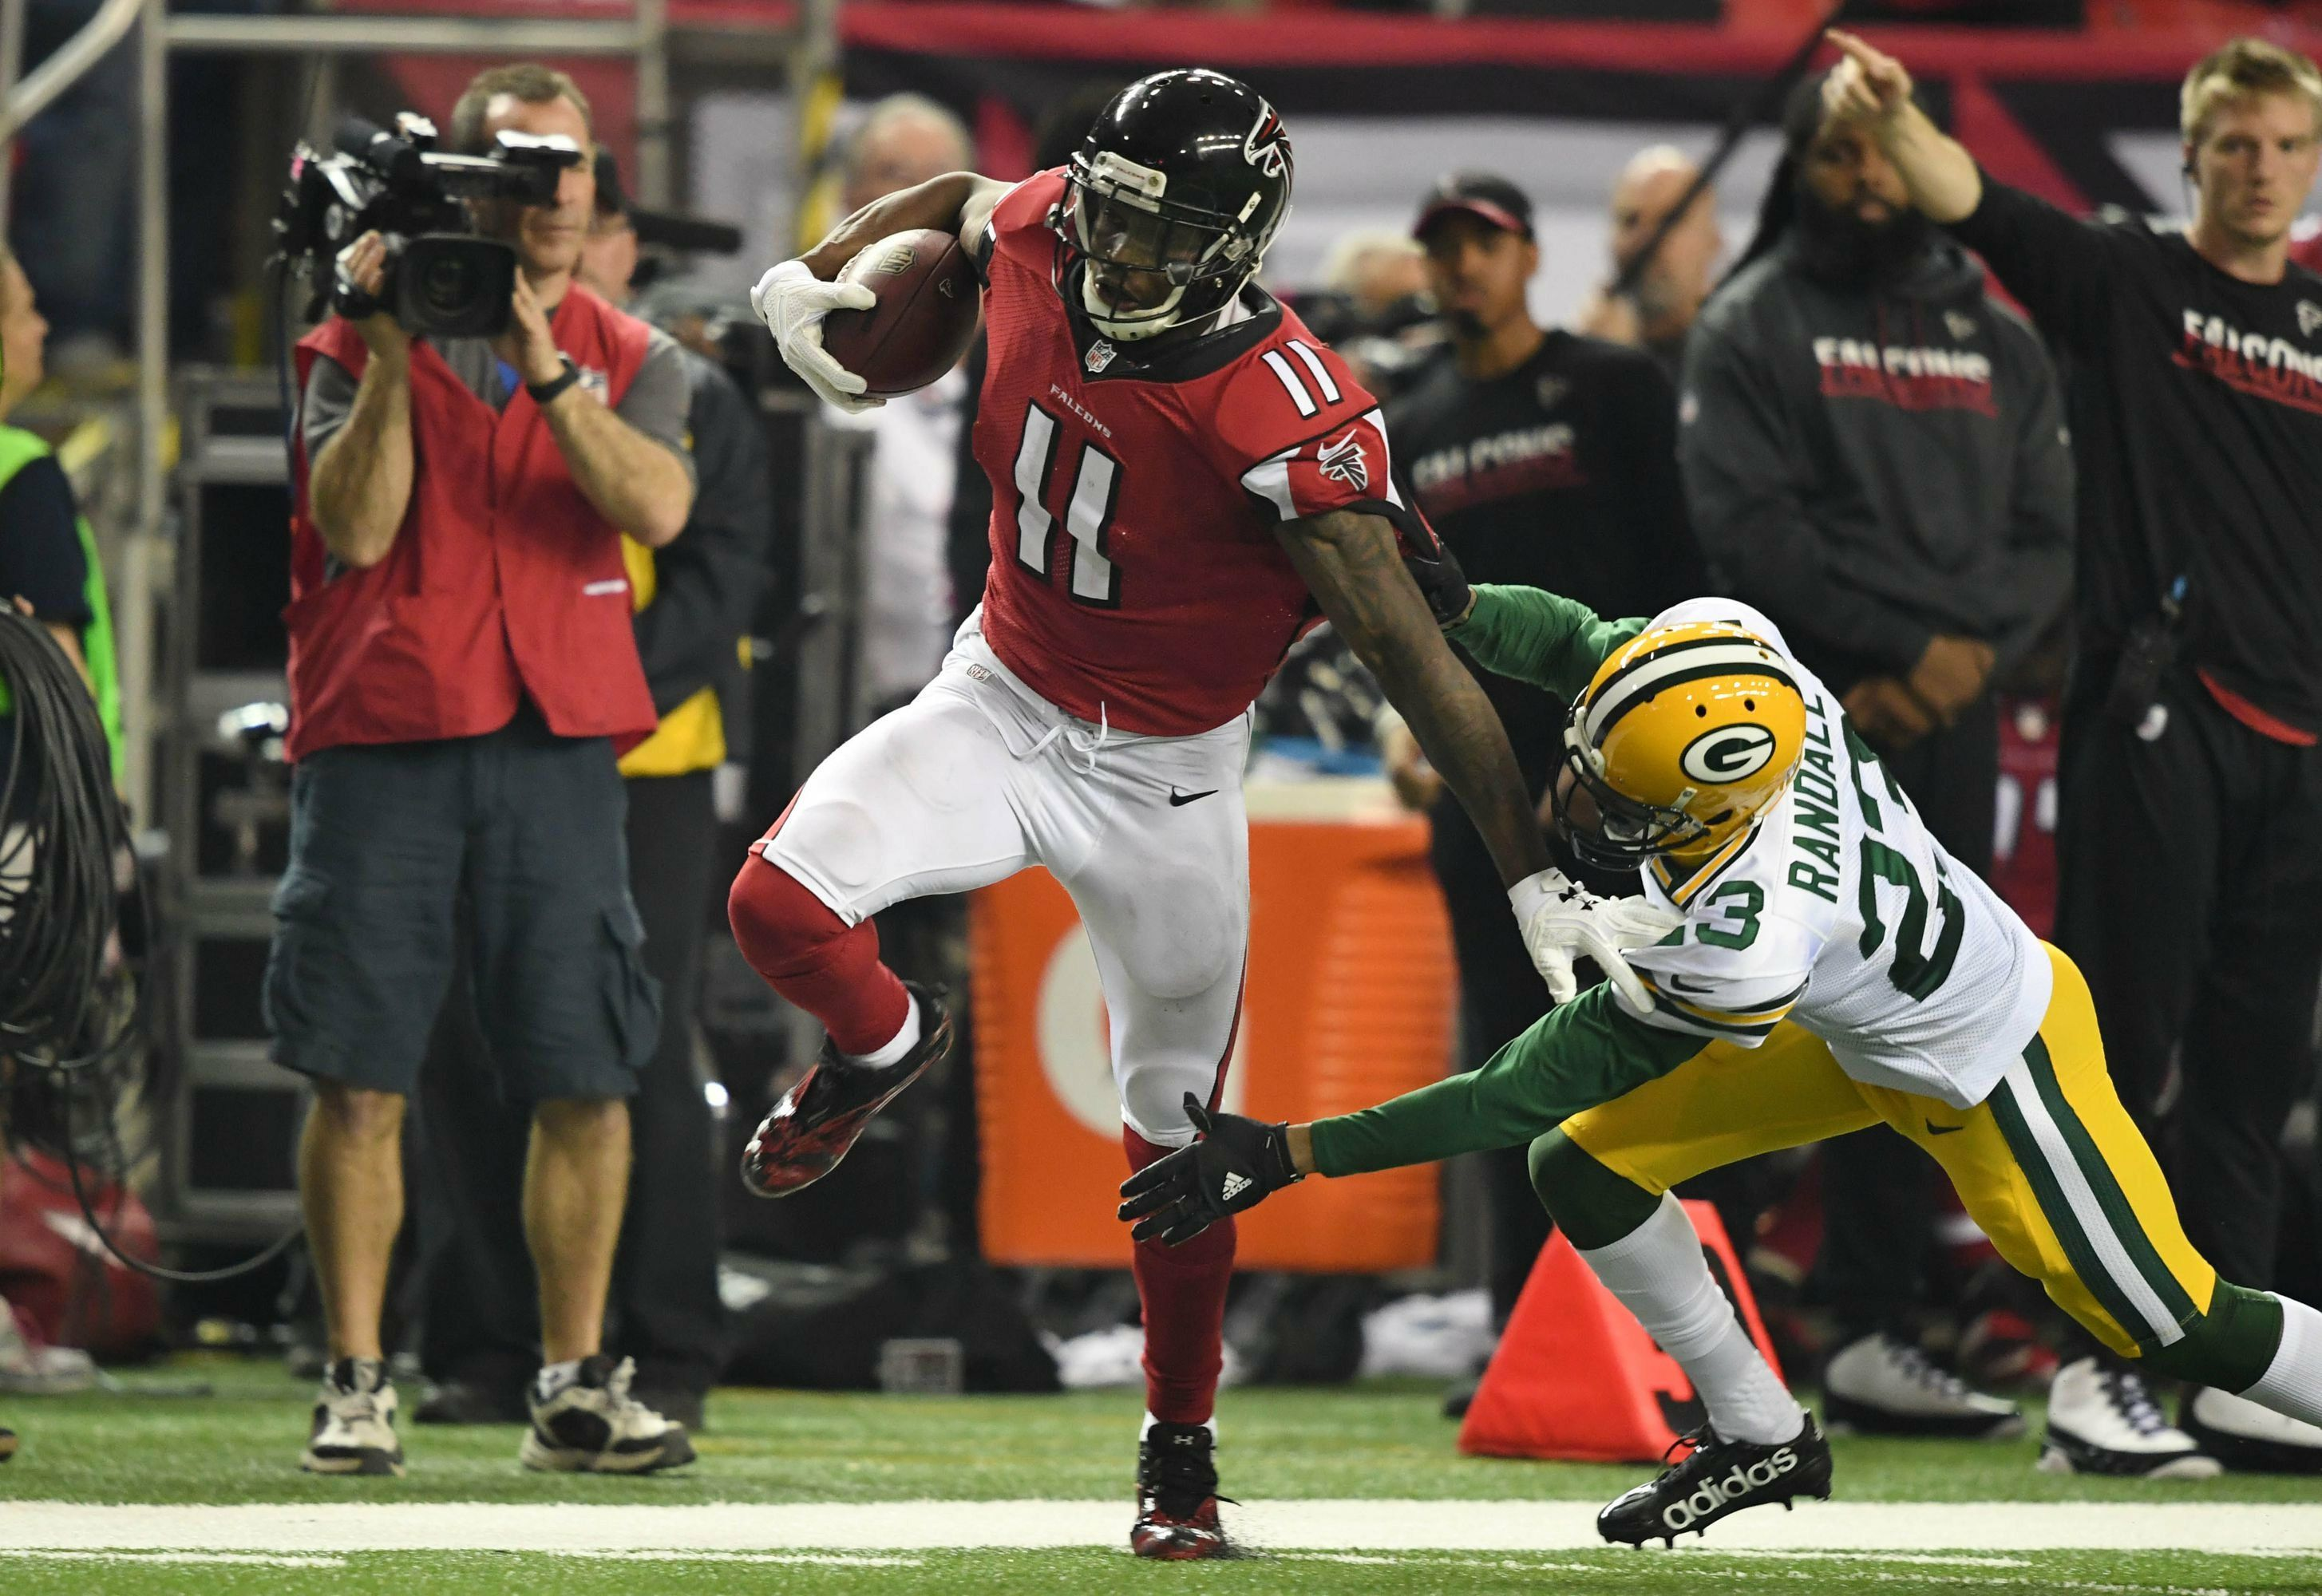 Throwback Julio Jones Destroys Packers Secondary Falconsfam Nfc Championship Game Julio Jones Bama Football